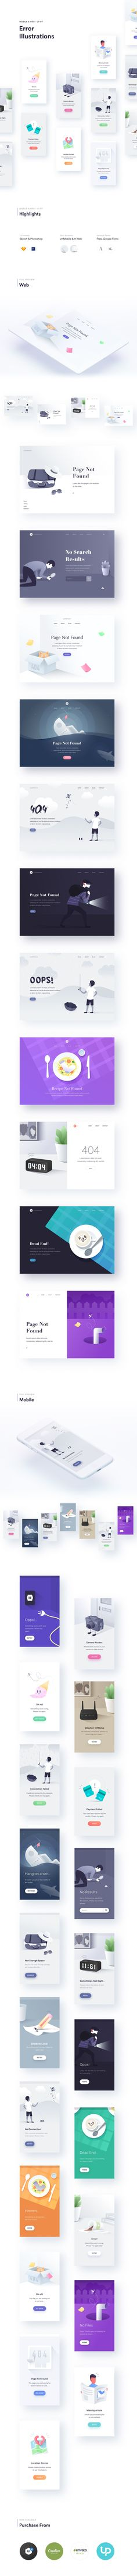 Beautiful, modern & detailed-illustrations created using Sketch app and Adobe Ph… - UI Design Board Mobile Ui Design, App Ui Design, User Interface Design, Layout Design, Module Design, Empty State, 404 Pages, Mobile App Ui, Ui Design Inspiration